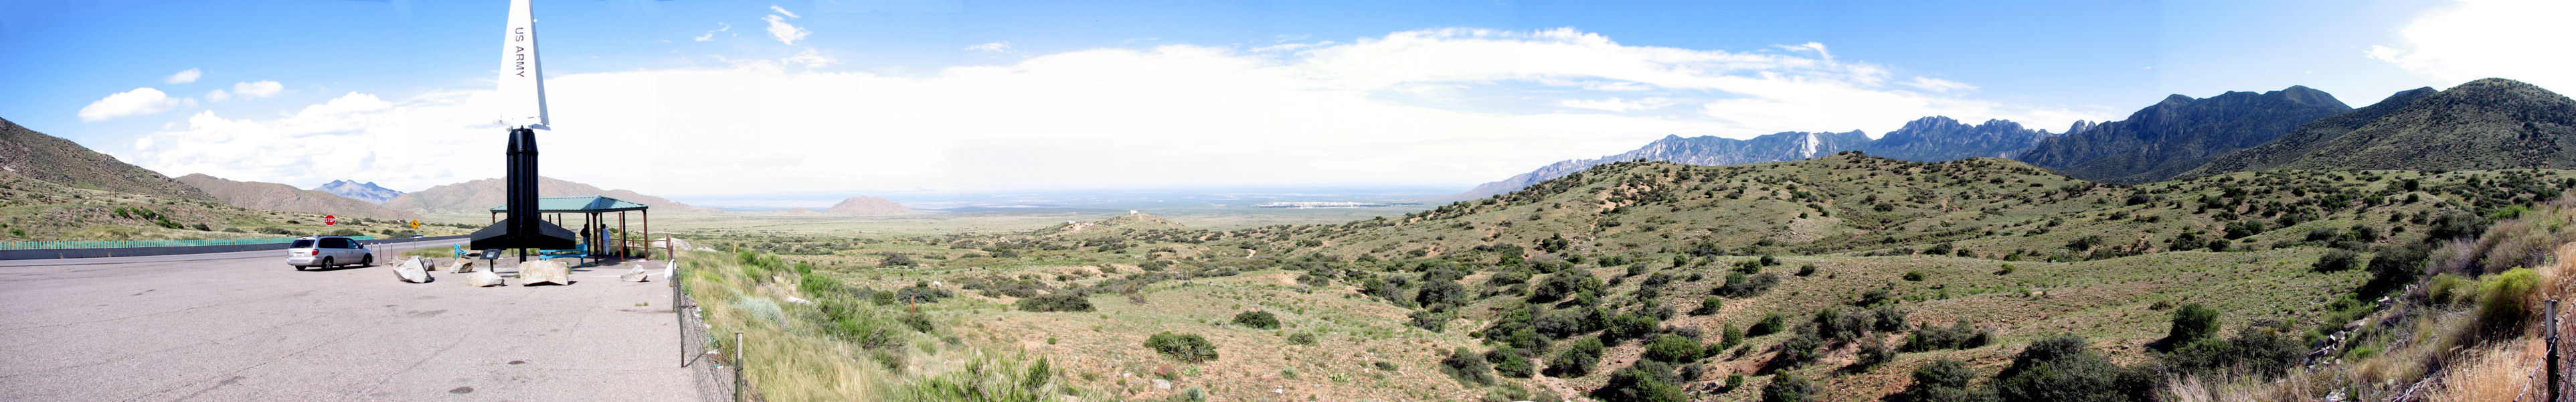 White Sands Missile Range lookout